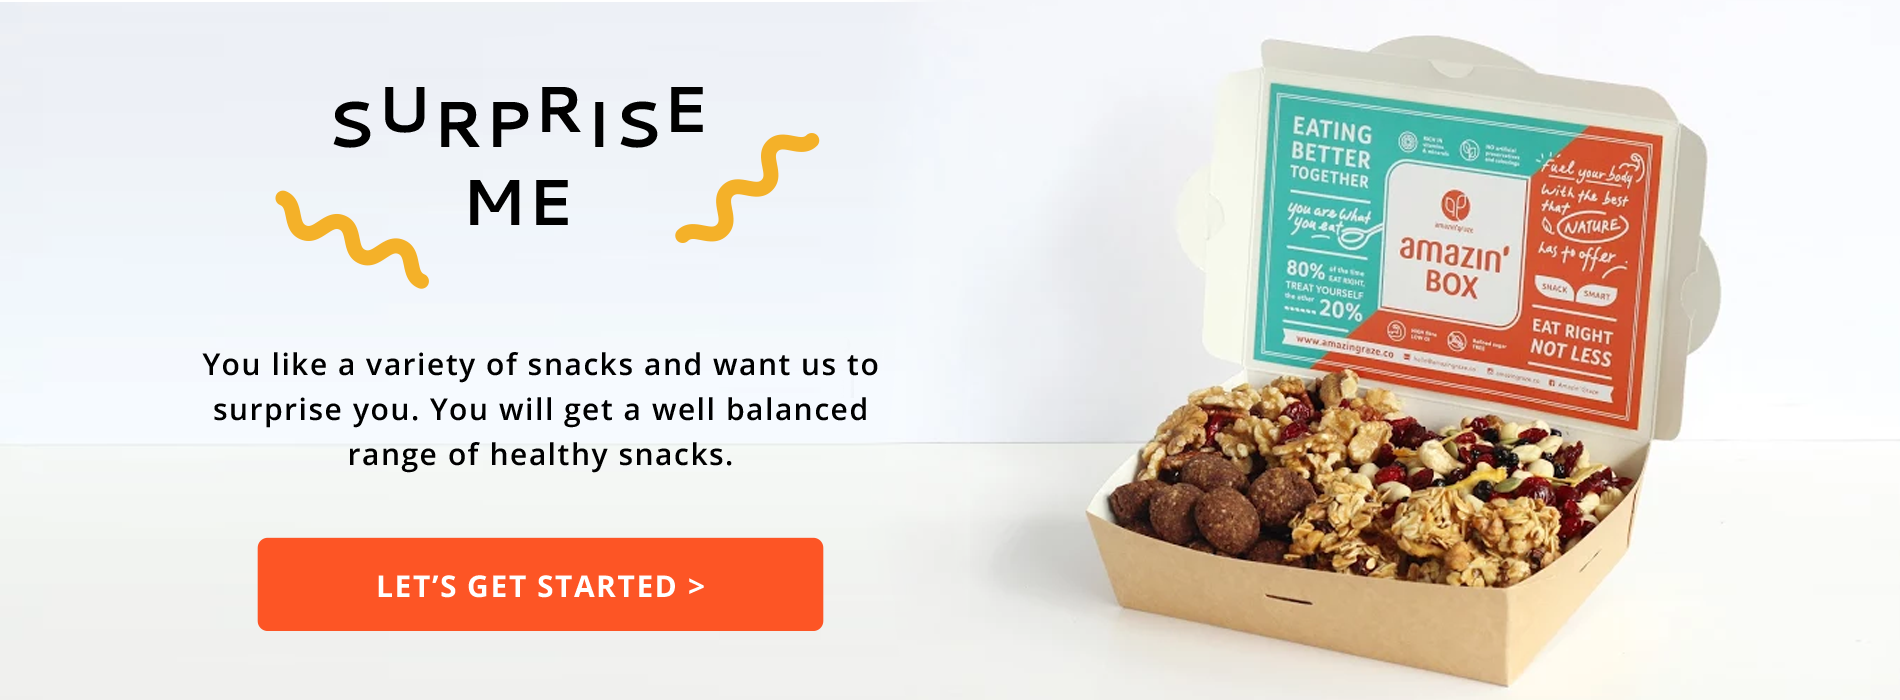 You like a variety of snacks and want us to surprise you. You will get a well-balanced range of healthy snacks, written next to a box full of healthy granolas and nuts